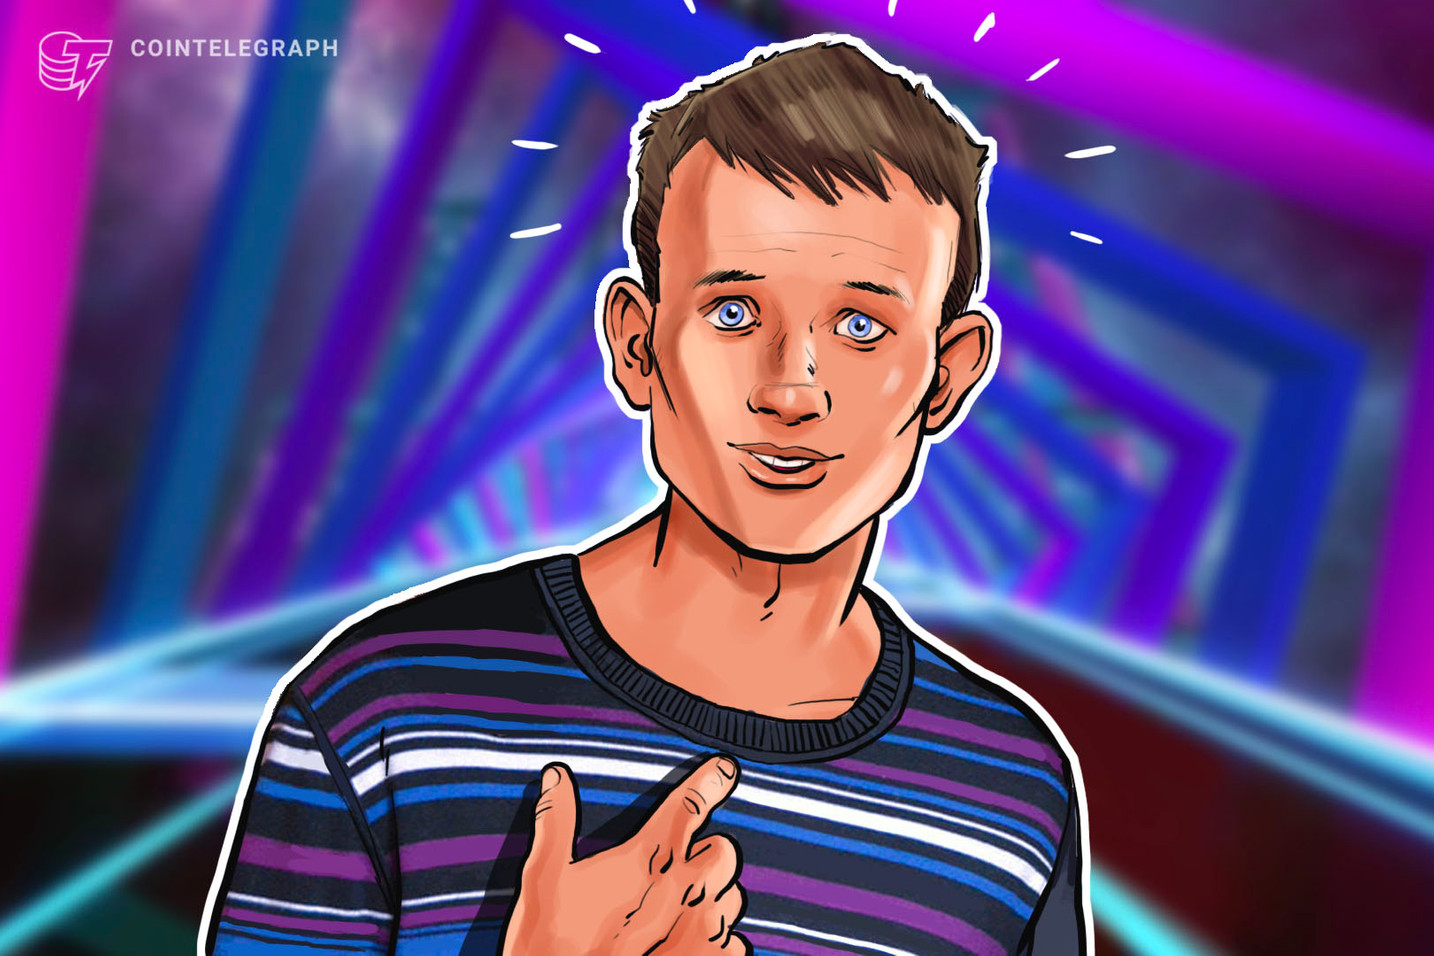 Ethereum's Vitalik Buterin on 'Zombie' BitTorrent Under Justin Sun 'Dictatorship'